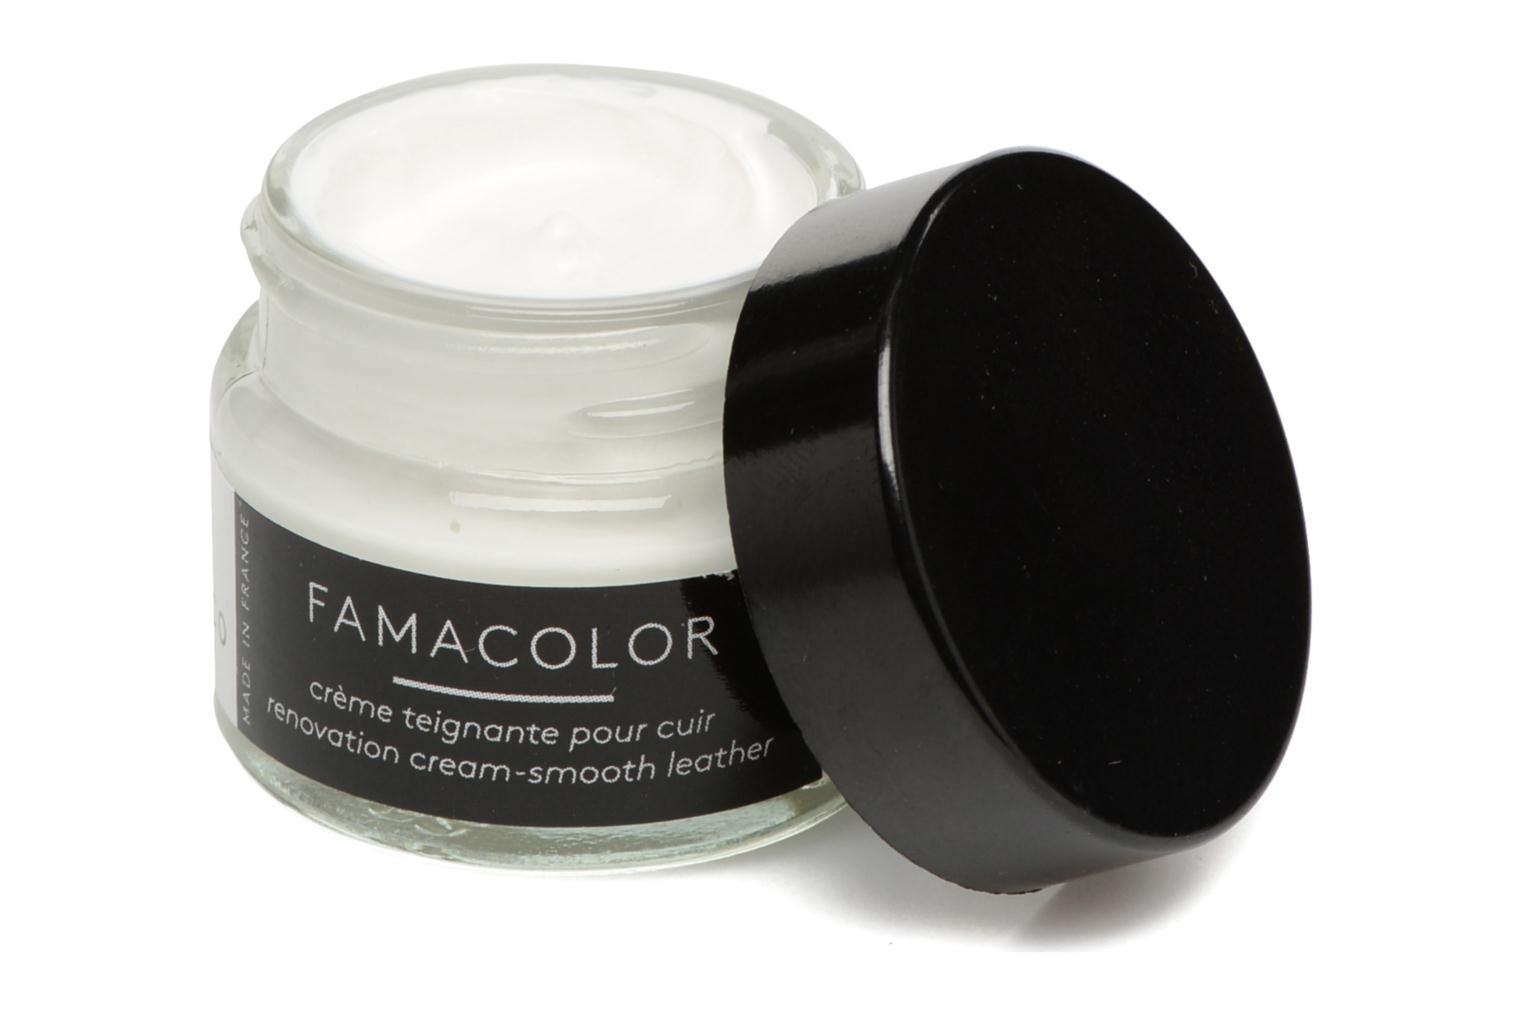 Teinture solide famacolor 15ml Blanc